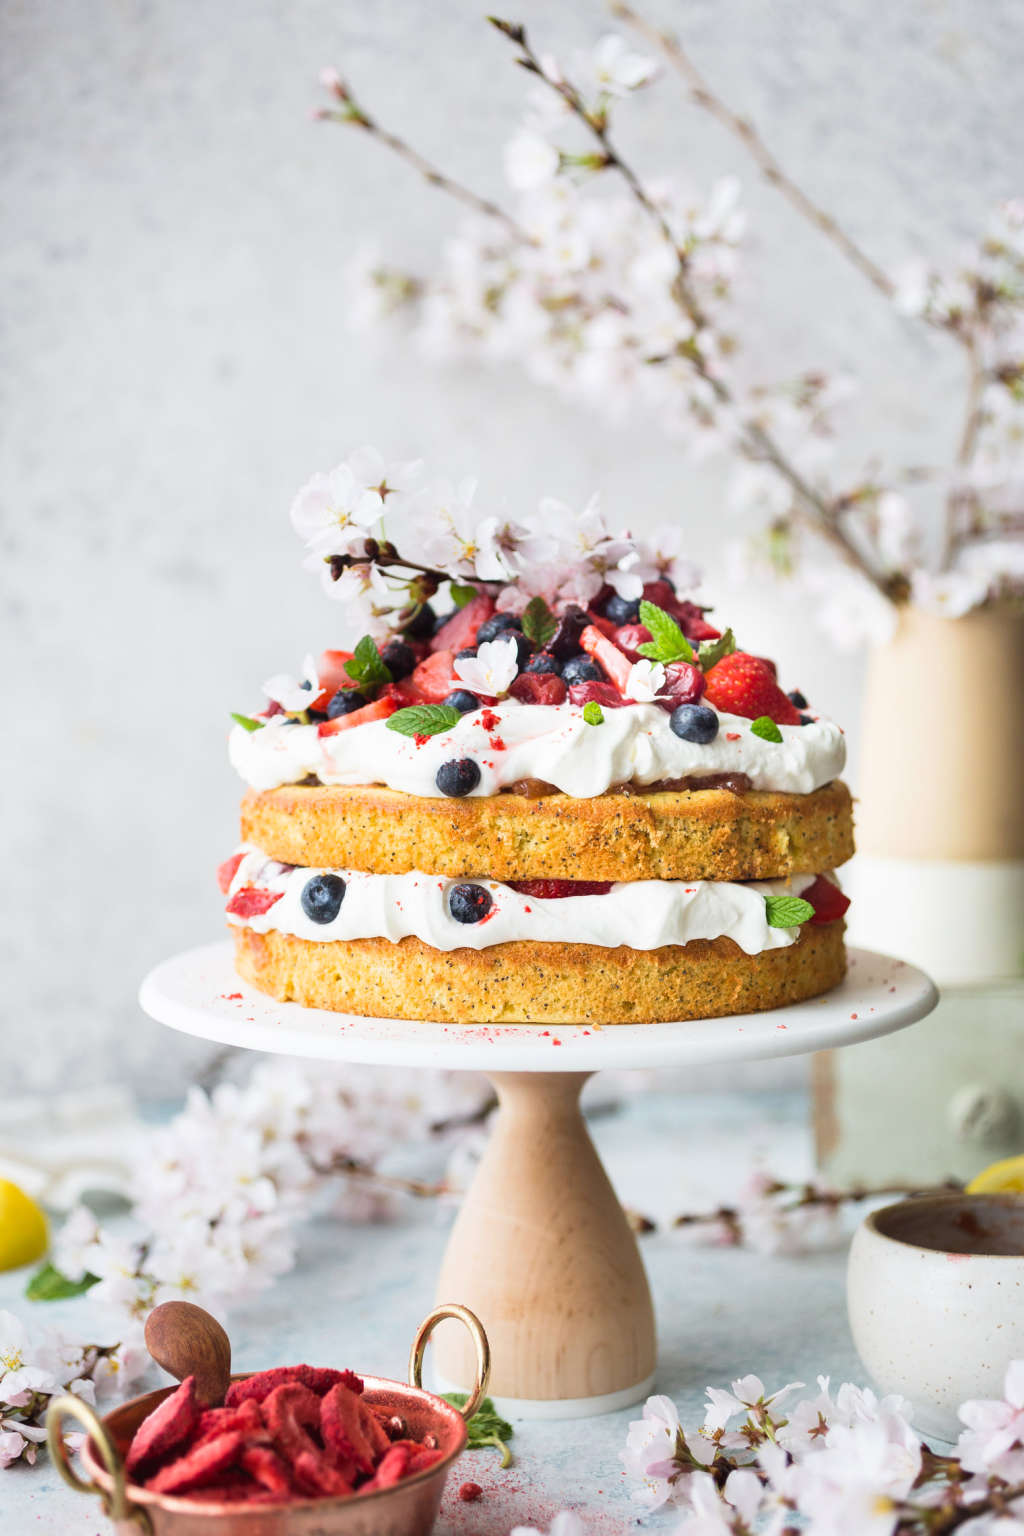 The Prettiest (yet Most Relaxed) Cake for Spring